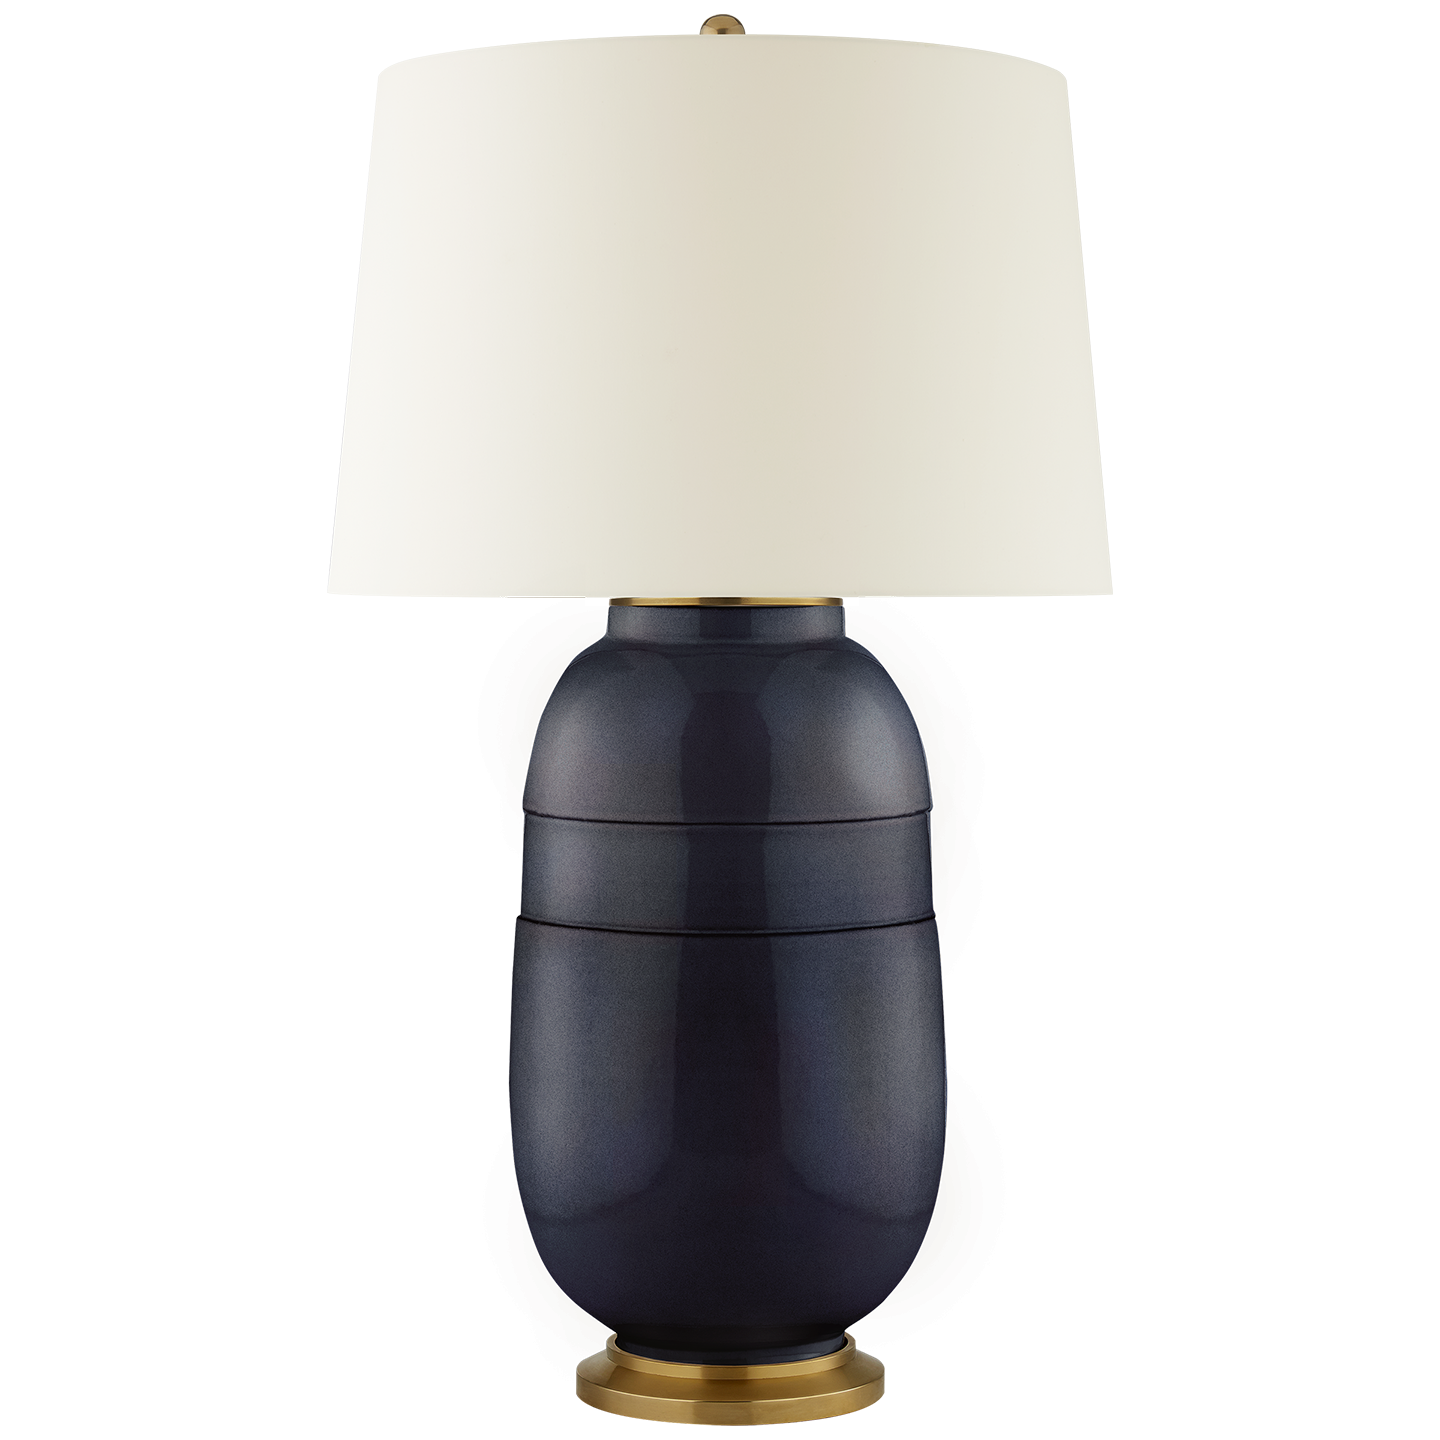 Newcomb Large Table Lamp By Christopher Spitzmiller In Mixed Blue Brown  With Natural Percale Shade |